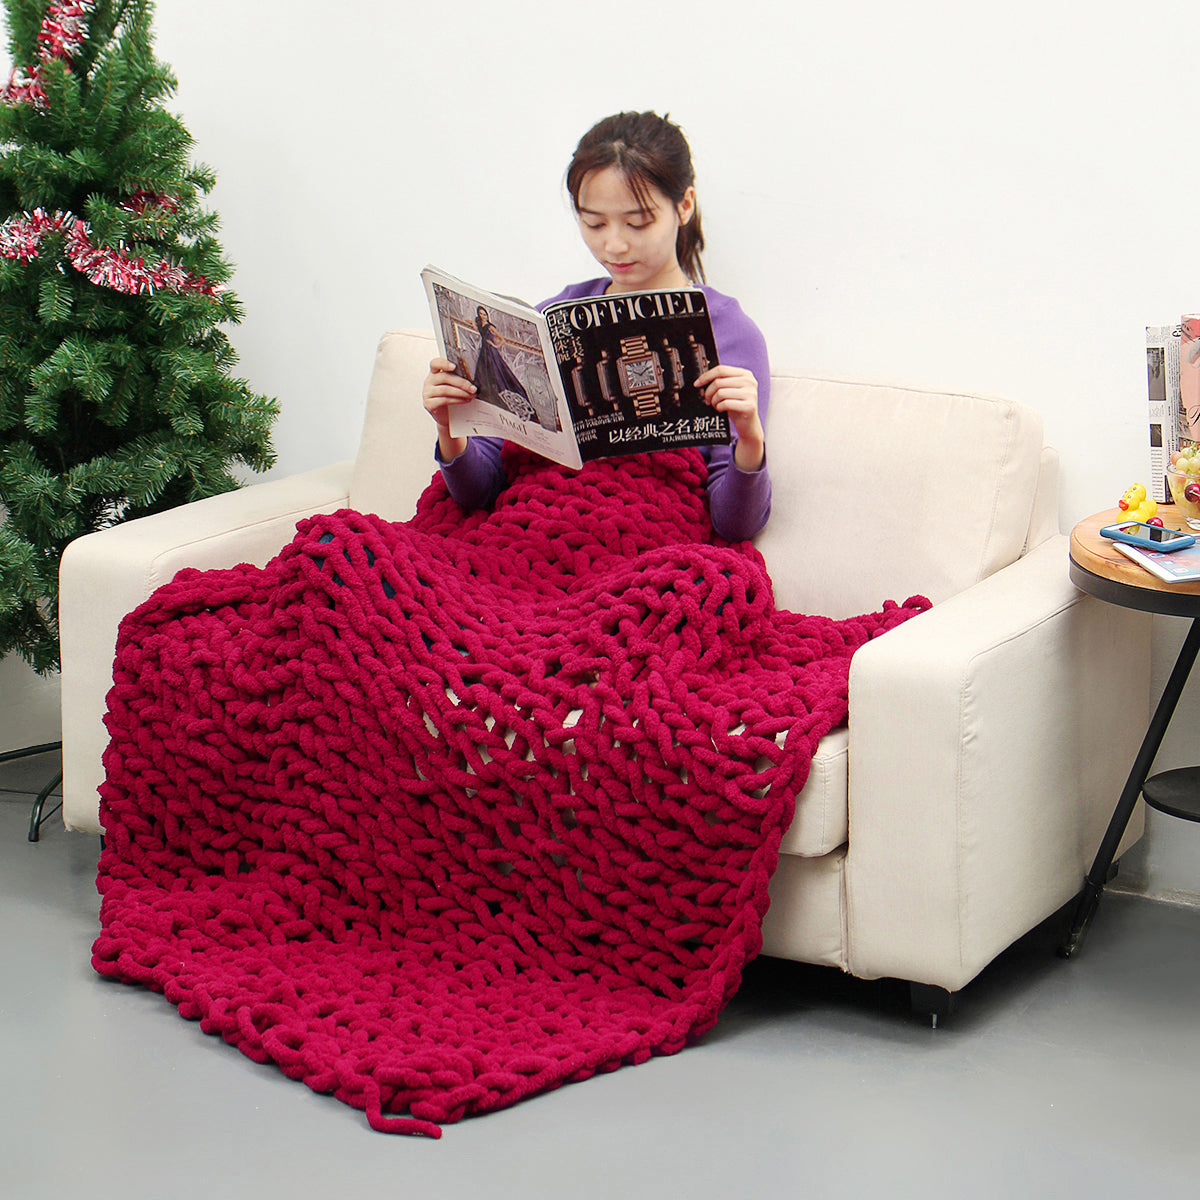 KnitQueen™ 100x150cm Handmade Knitted Cotton Throw Blankets - Soft Washable Lint-free!